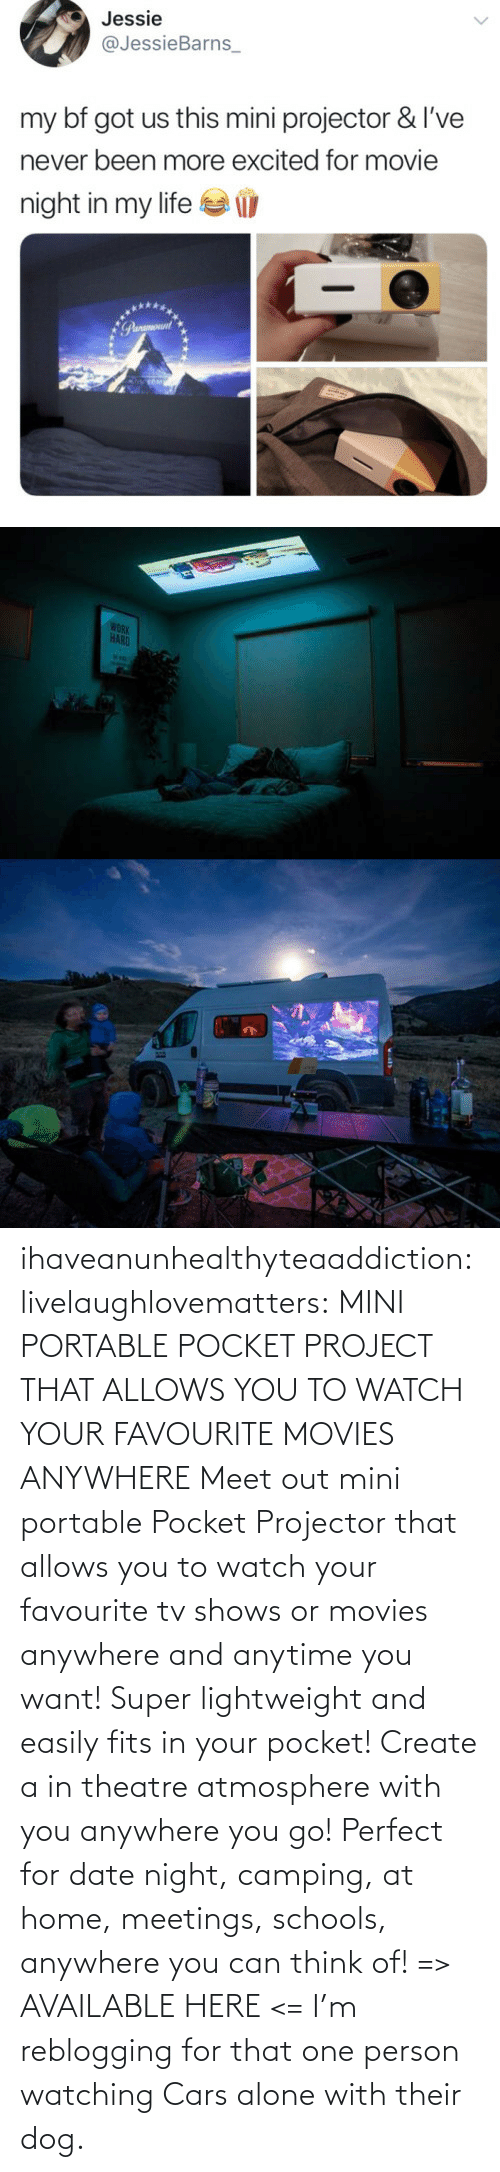 Date: ihaveanunhealthyteaaddiction: livelaughlovematters:  MINI PORTABLE POCKET PROJECT THAT ALLOWS YOU TO WATCH YOUR FAVOURITE MOVIES ANYWHERE Meet out mini portable Pocket Projector that allows you to watch your favourite tv shows or movies anywhere and anytime you want! Super lightweight and easily fits in your pocket! Create a in theatre atmosphere with you anywhere you go! Perfect for date night, camping, at home, meetings, schools, anywhere you can think of! => AVAILABLE HERE <=    I'm reblogging for that one person watching Cars alone with their dog.